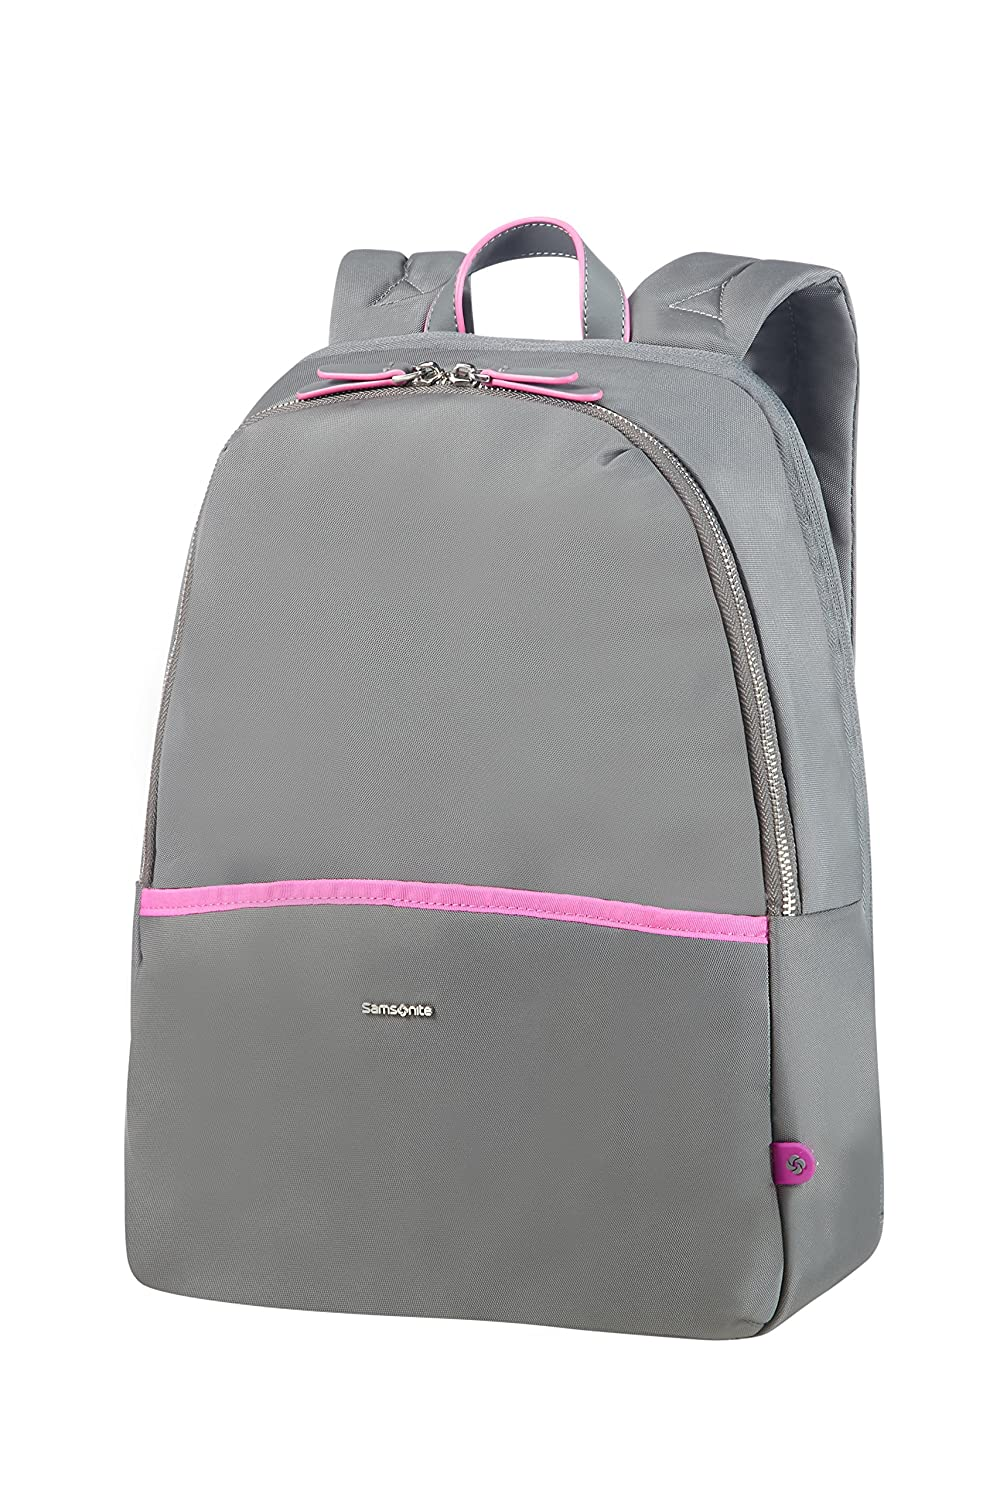 SAMSONITE Nefti - Backpack 14.1